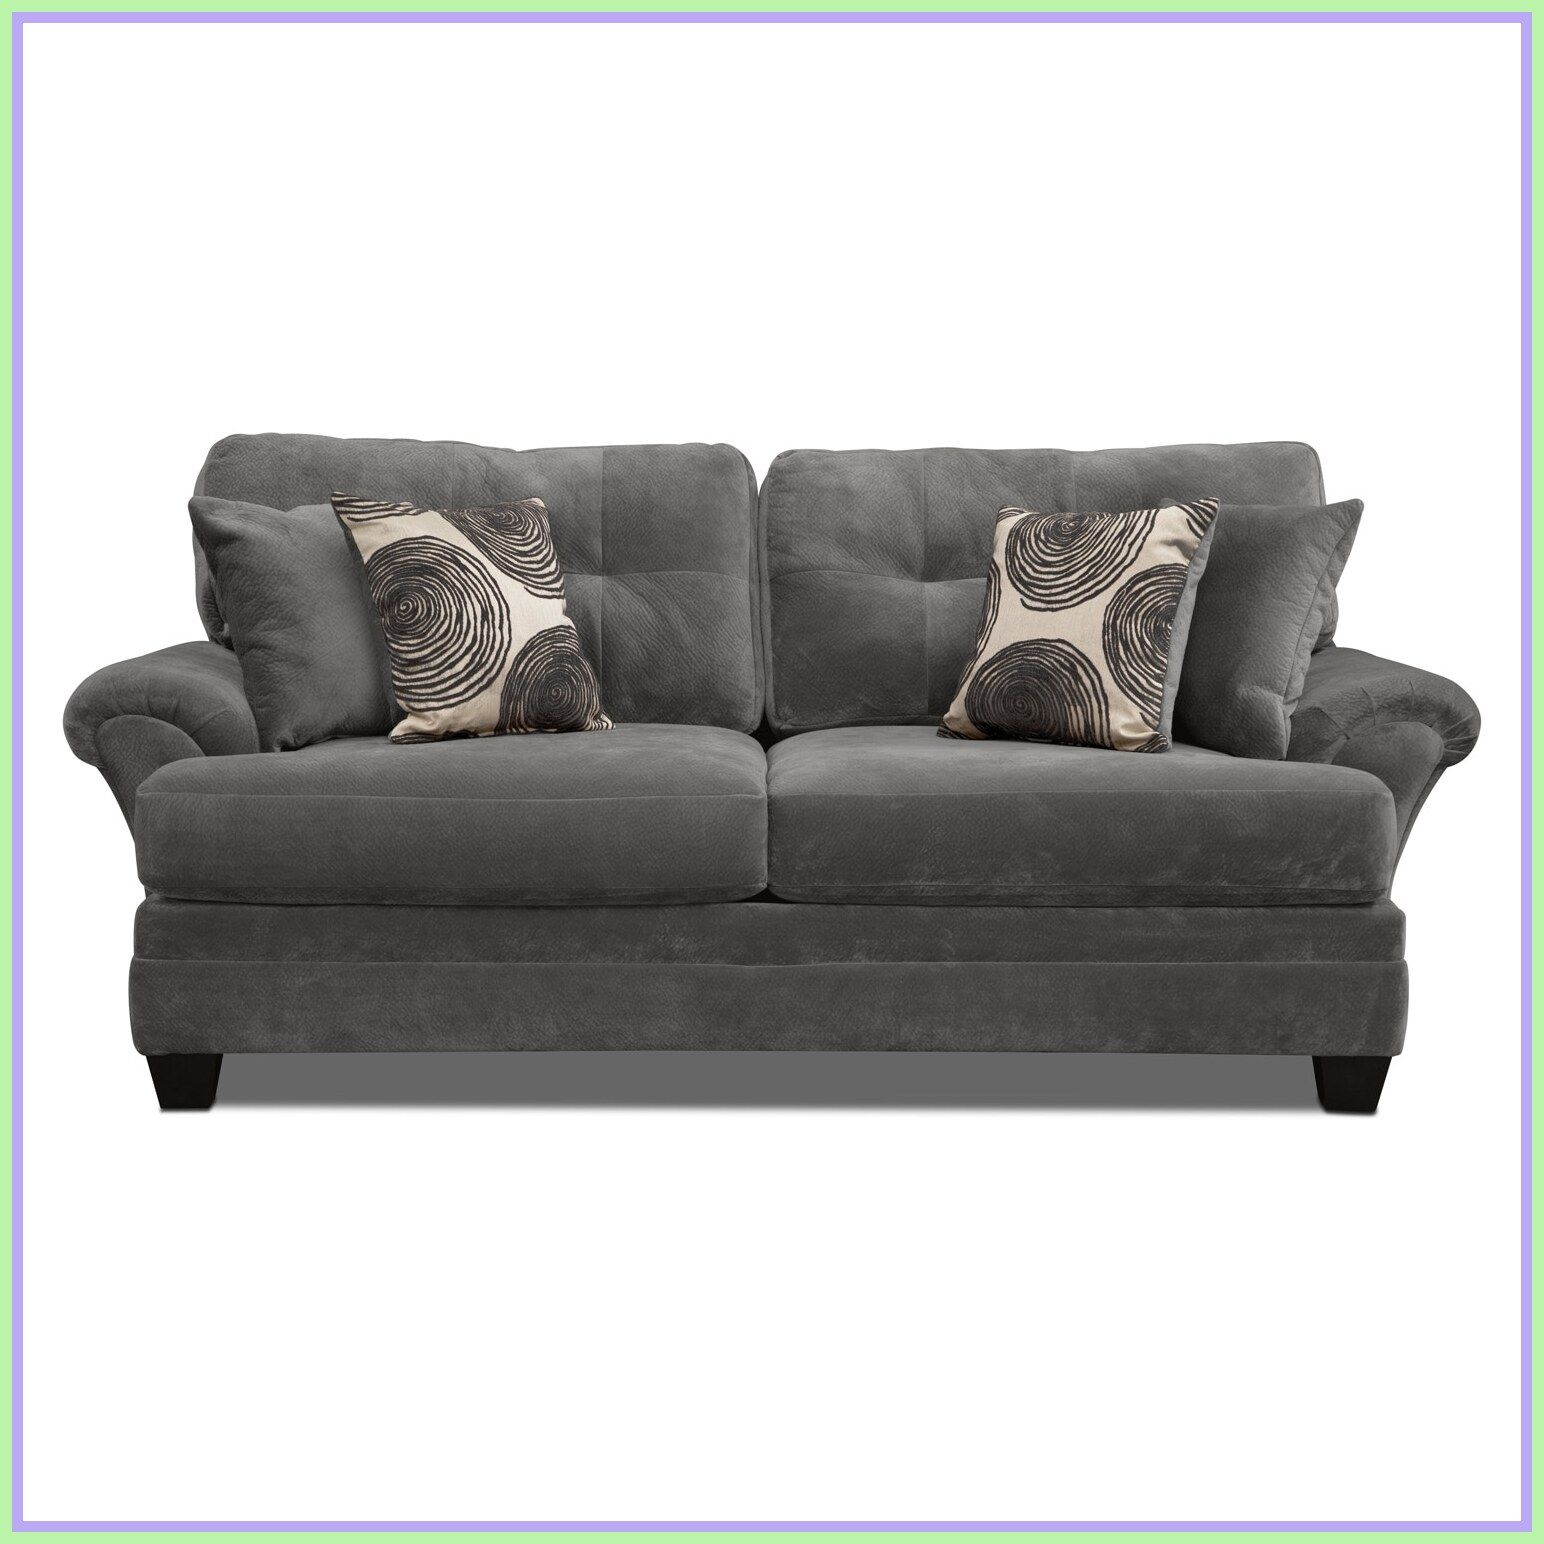 Change Up The Gray Couch With And Chic Black And White Striped Accents Grey Sofa Living Room Living Room Decor Gray Grey Couch Living Room